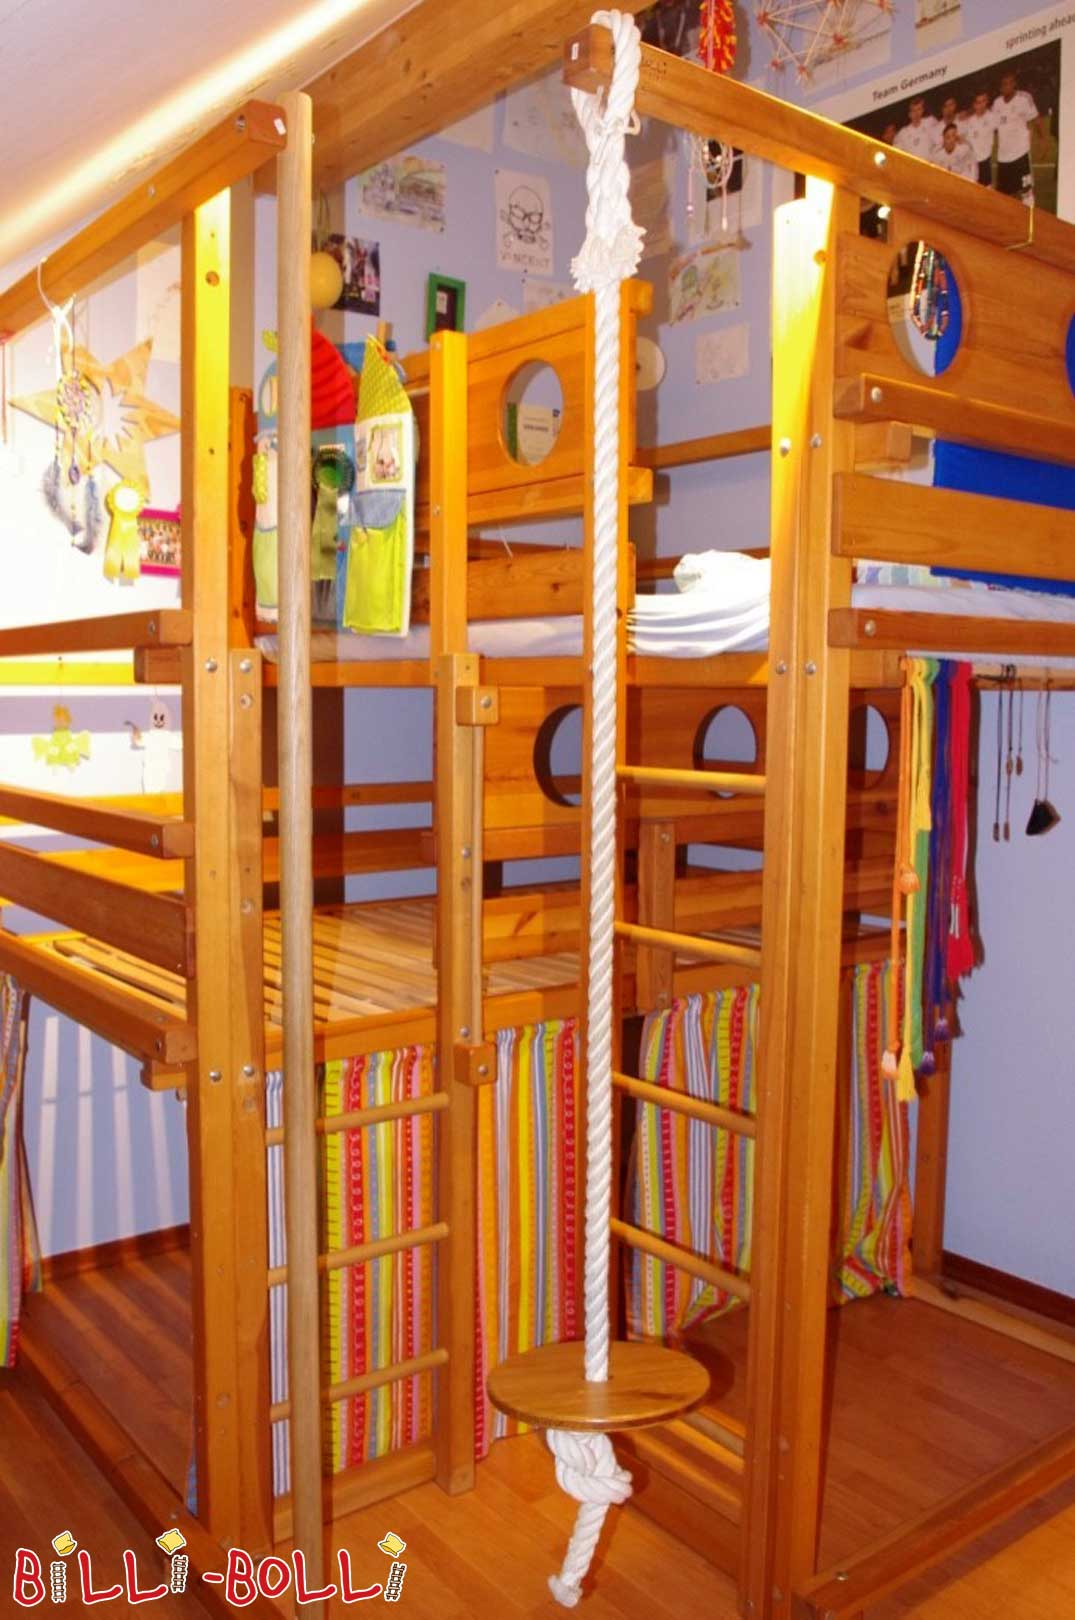 Both up bed type 2A (early type 7), 120 x 200 cm (second hand loft bed)